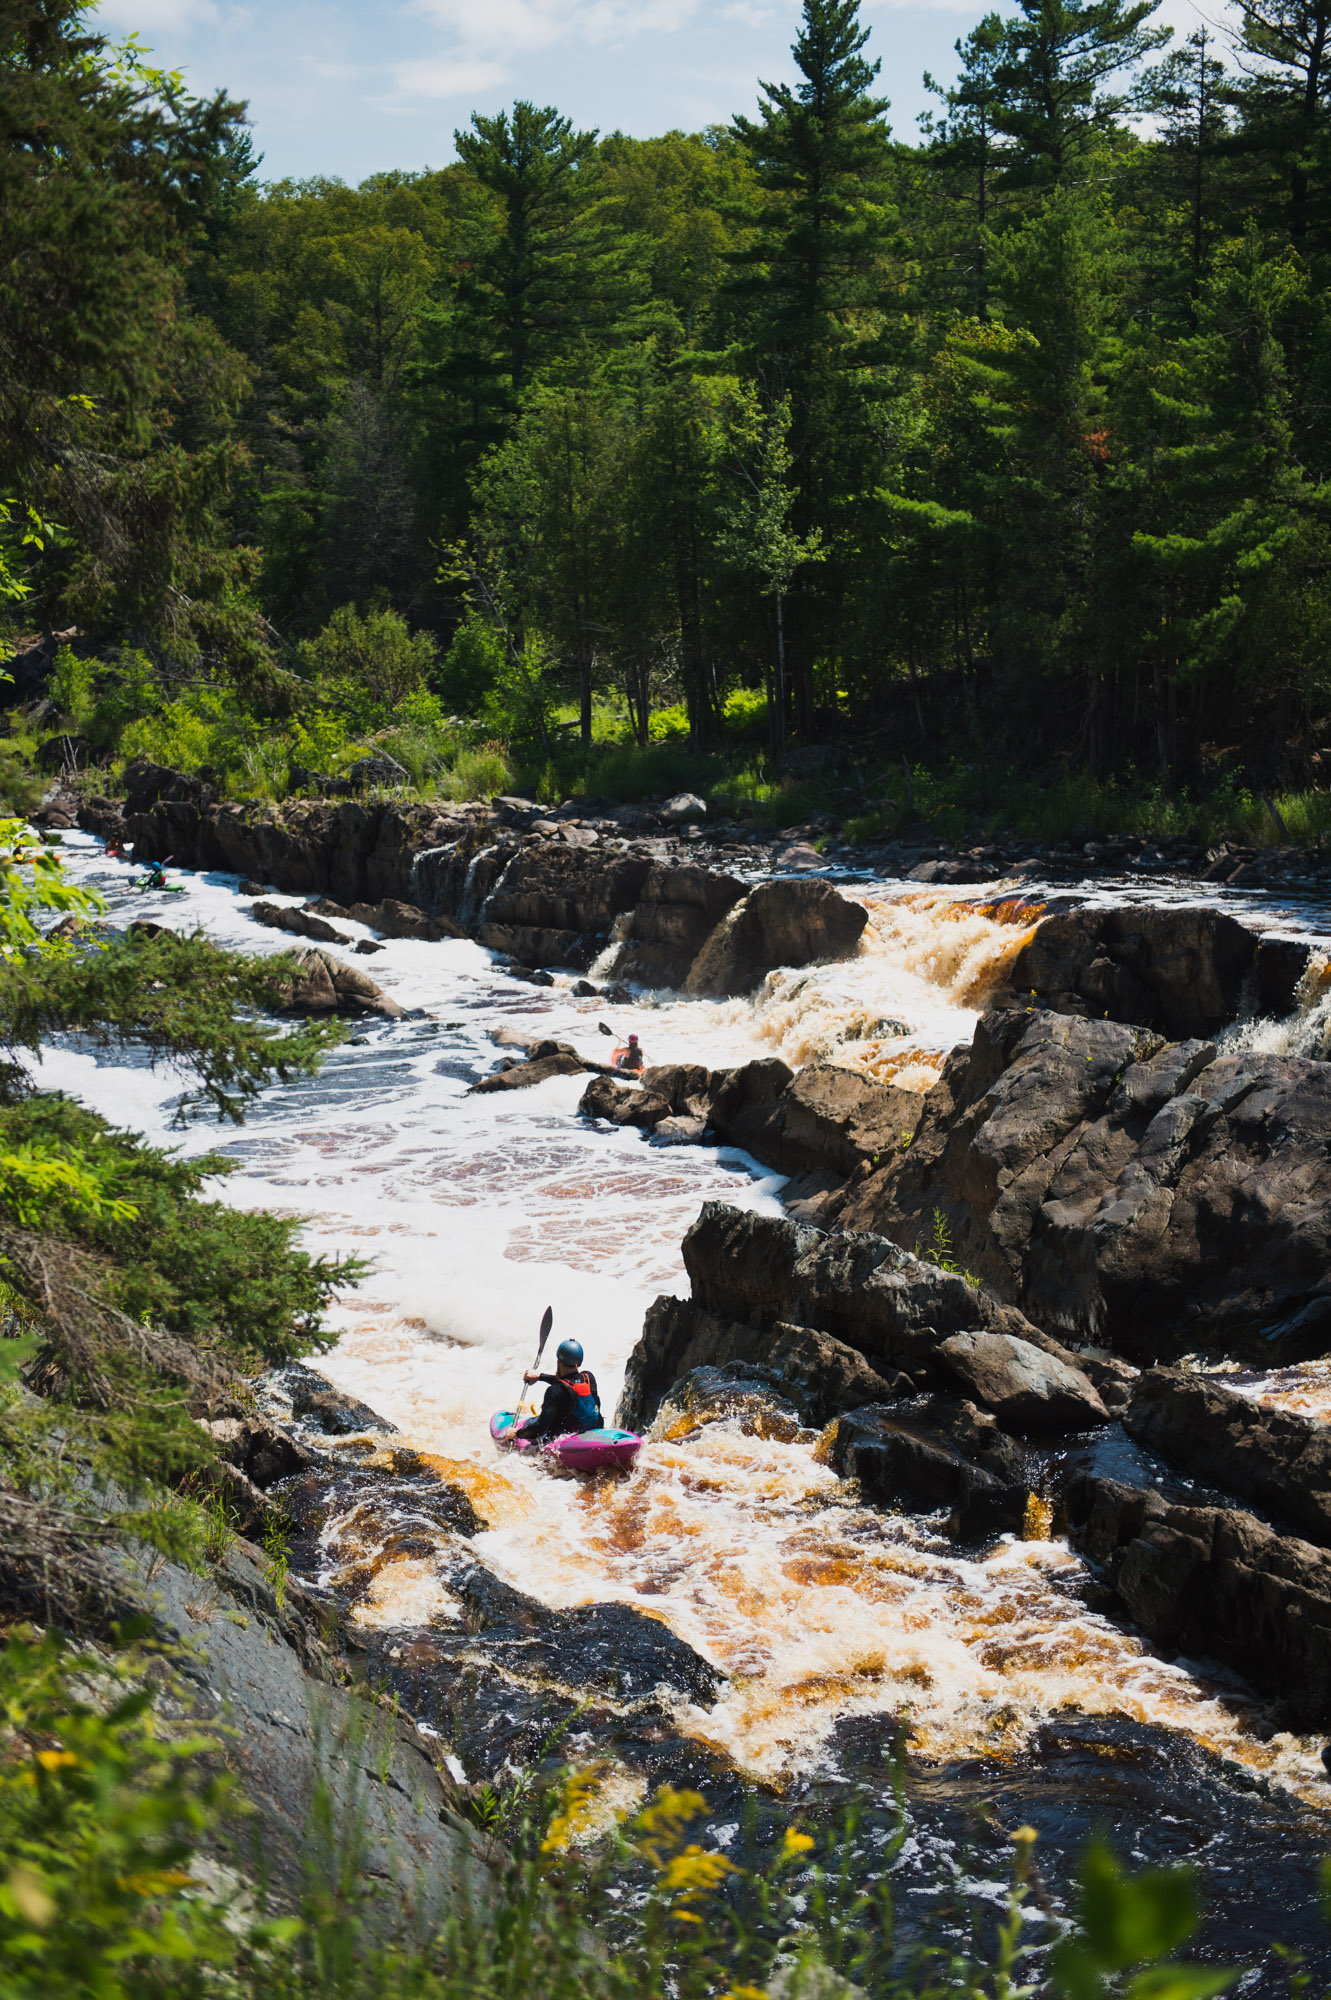 Kayakers paddle the whitewater of the St. Louis River in Jay Cooke State Park. Image courtesy of Alex Messenger Photography.